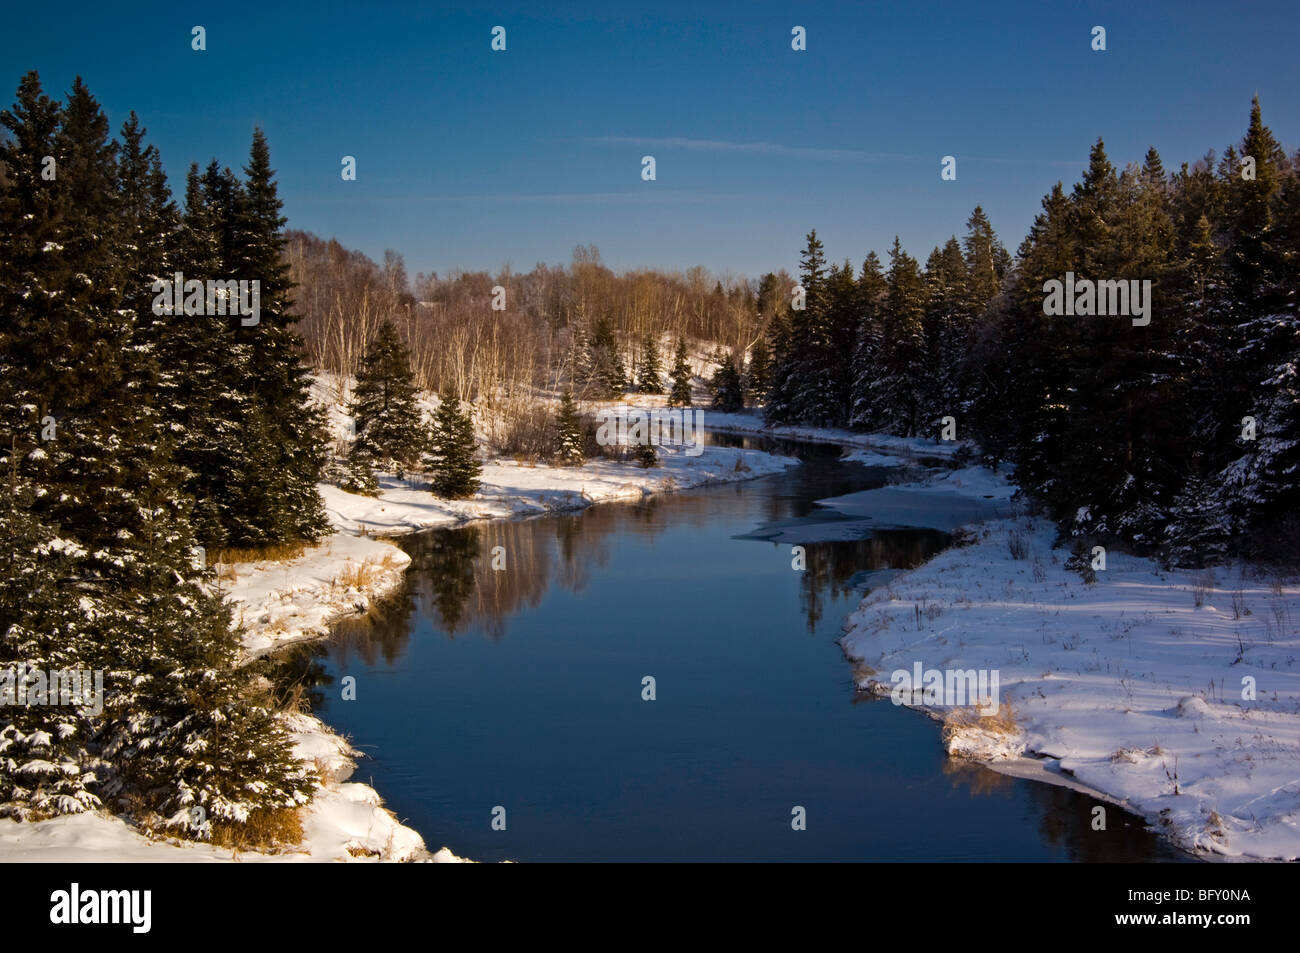 Open water of Junction Creek with snow-dusted spruces and frosted birches, Greater Sudbury, Ontario, Canada - Stock Image